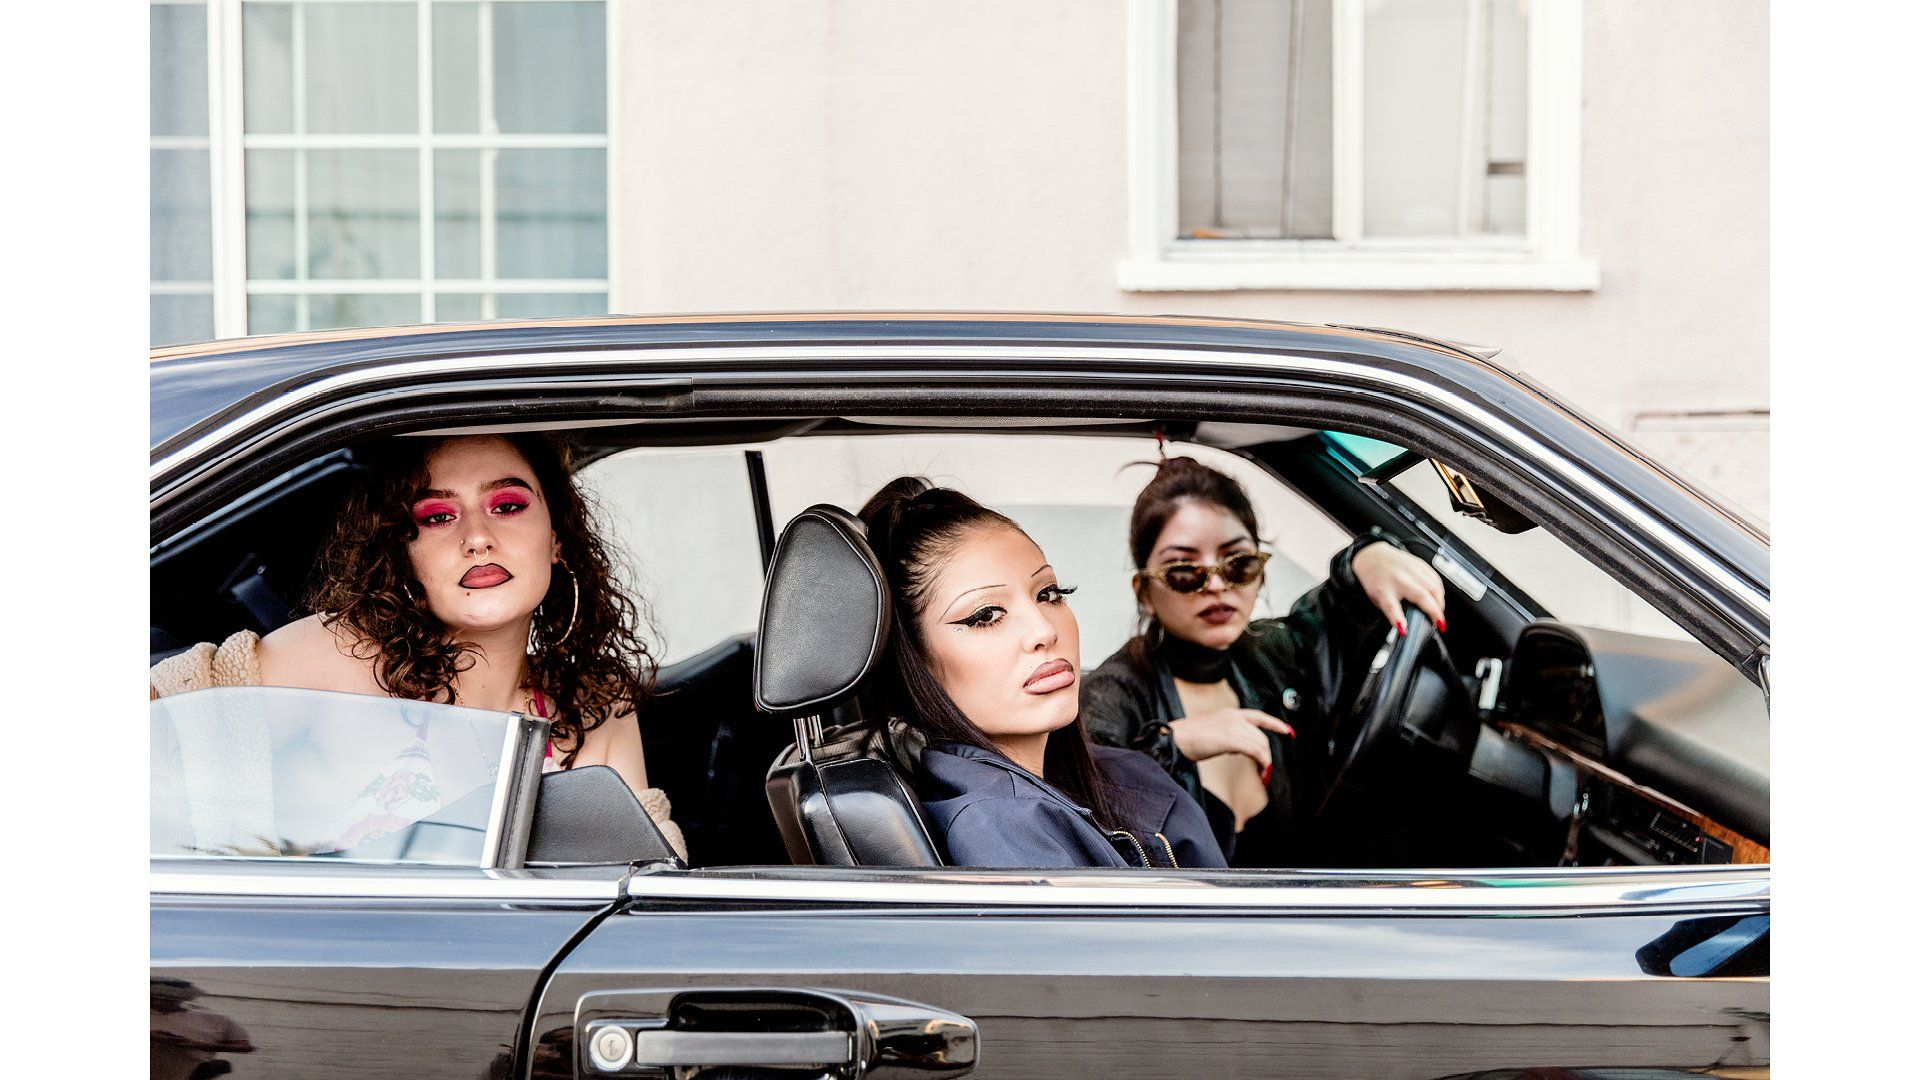 "American Women ""Latinas in Los Angeles"" - Salina Zazueta-Beltrán, Isabella Ferrada, and Victoria Valenzuela in East Hollywood. ph Stefan Ruiz, 125 anniversary Vogue US - Not Only Twenty, fashion blog over 40"